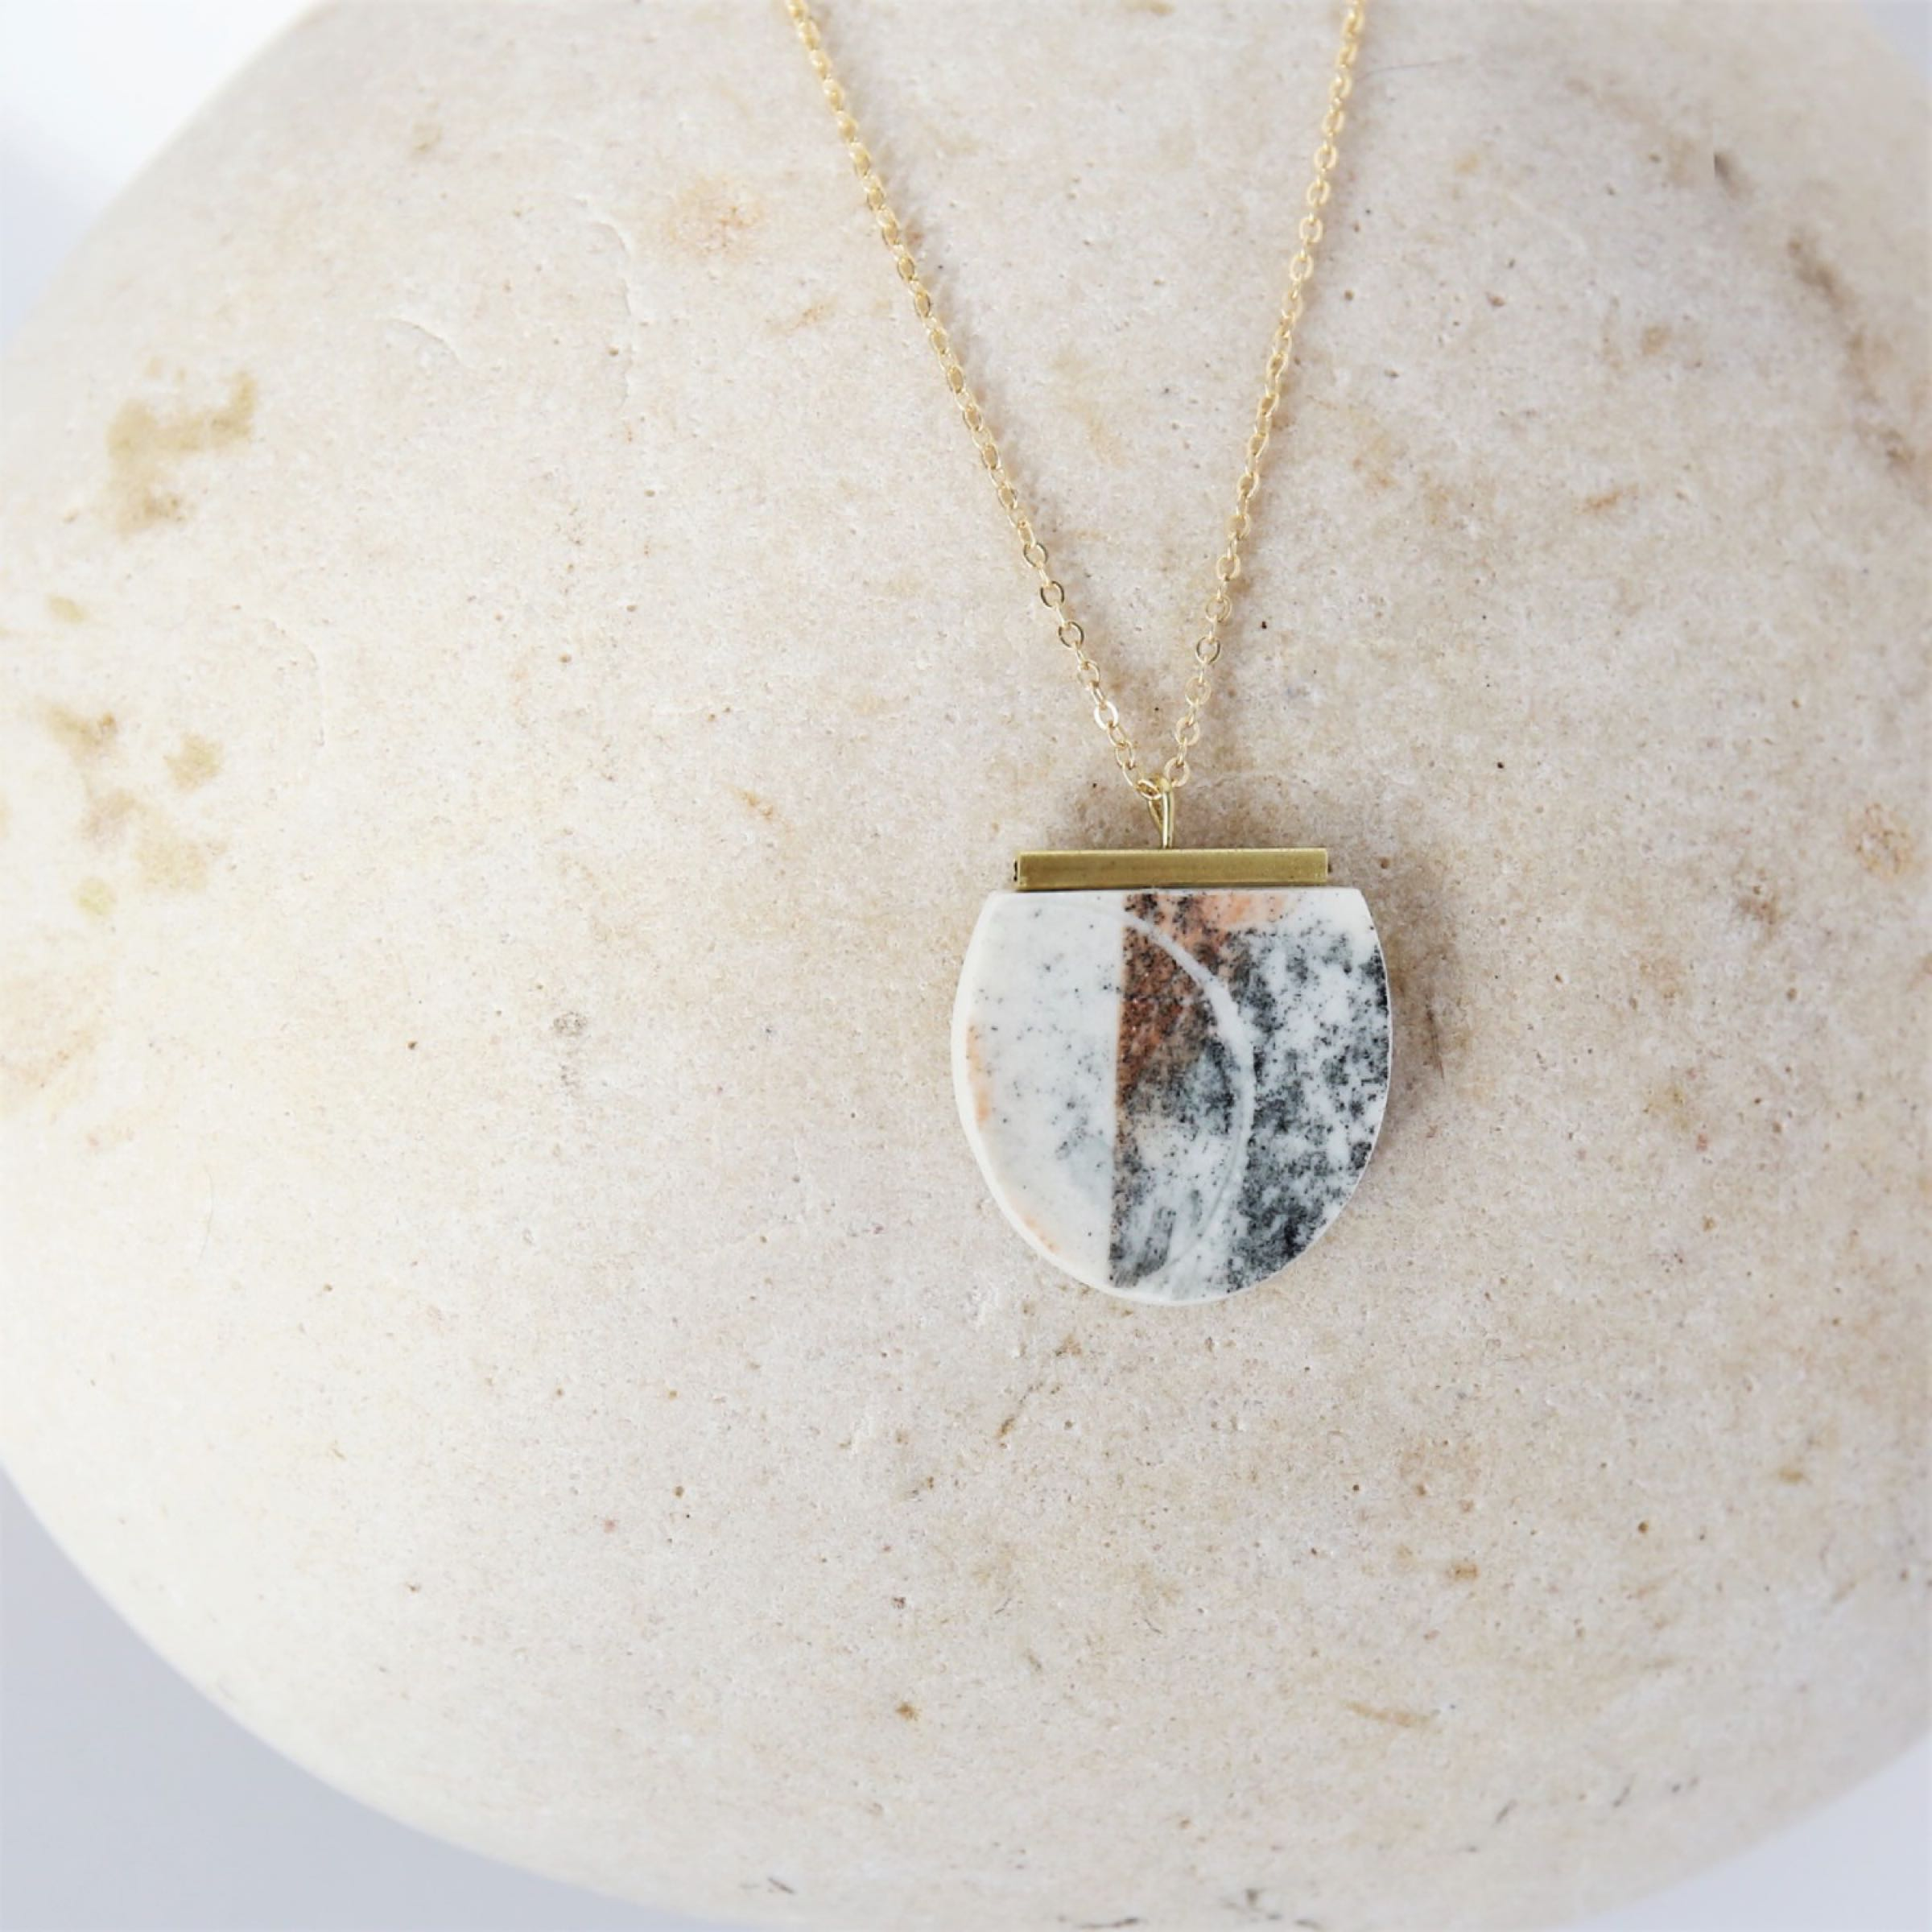 Porcelain and brass pendant on gold filled chain by Clay Shed Studio